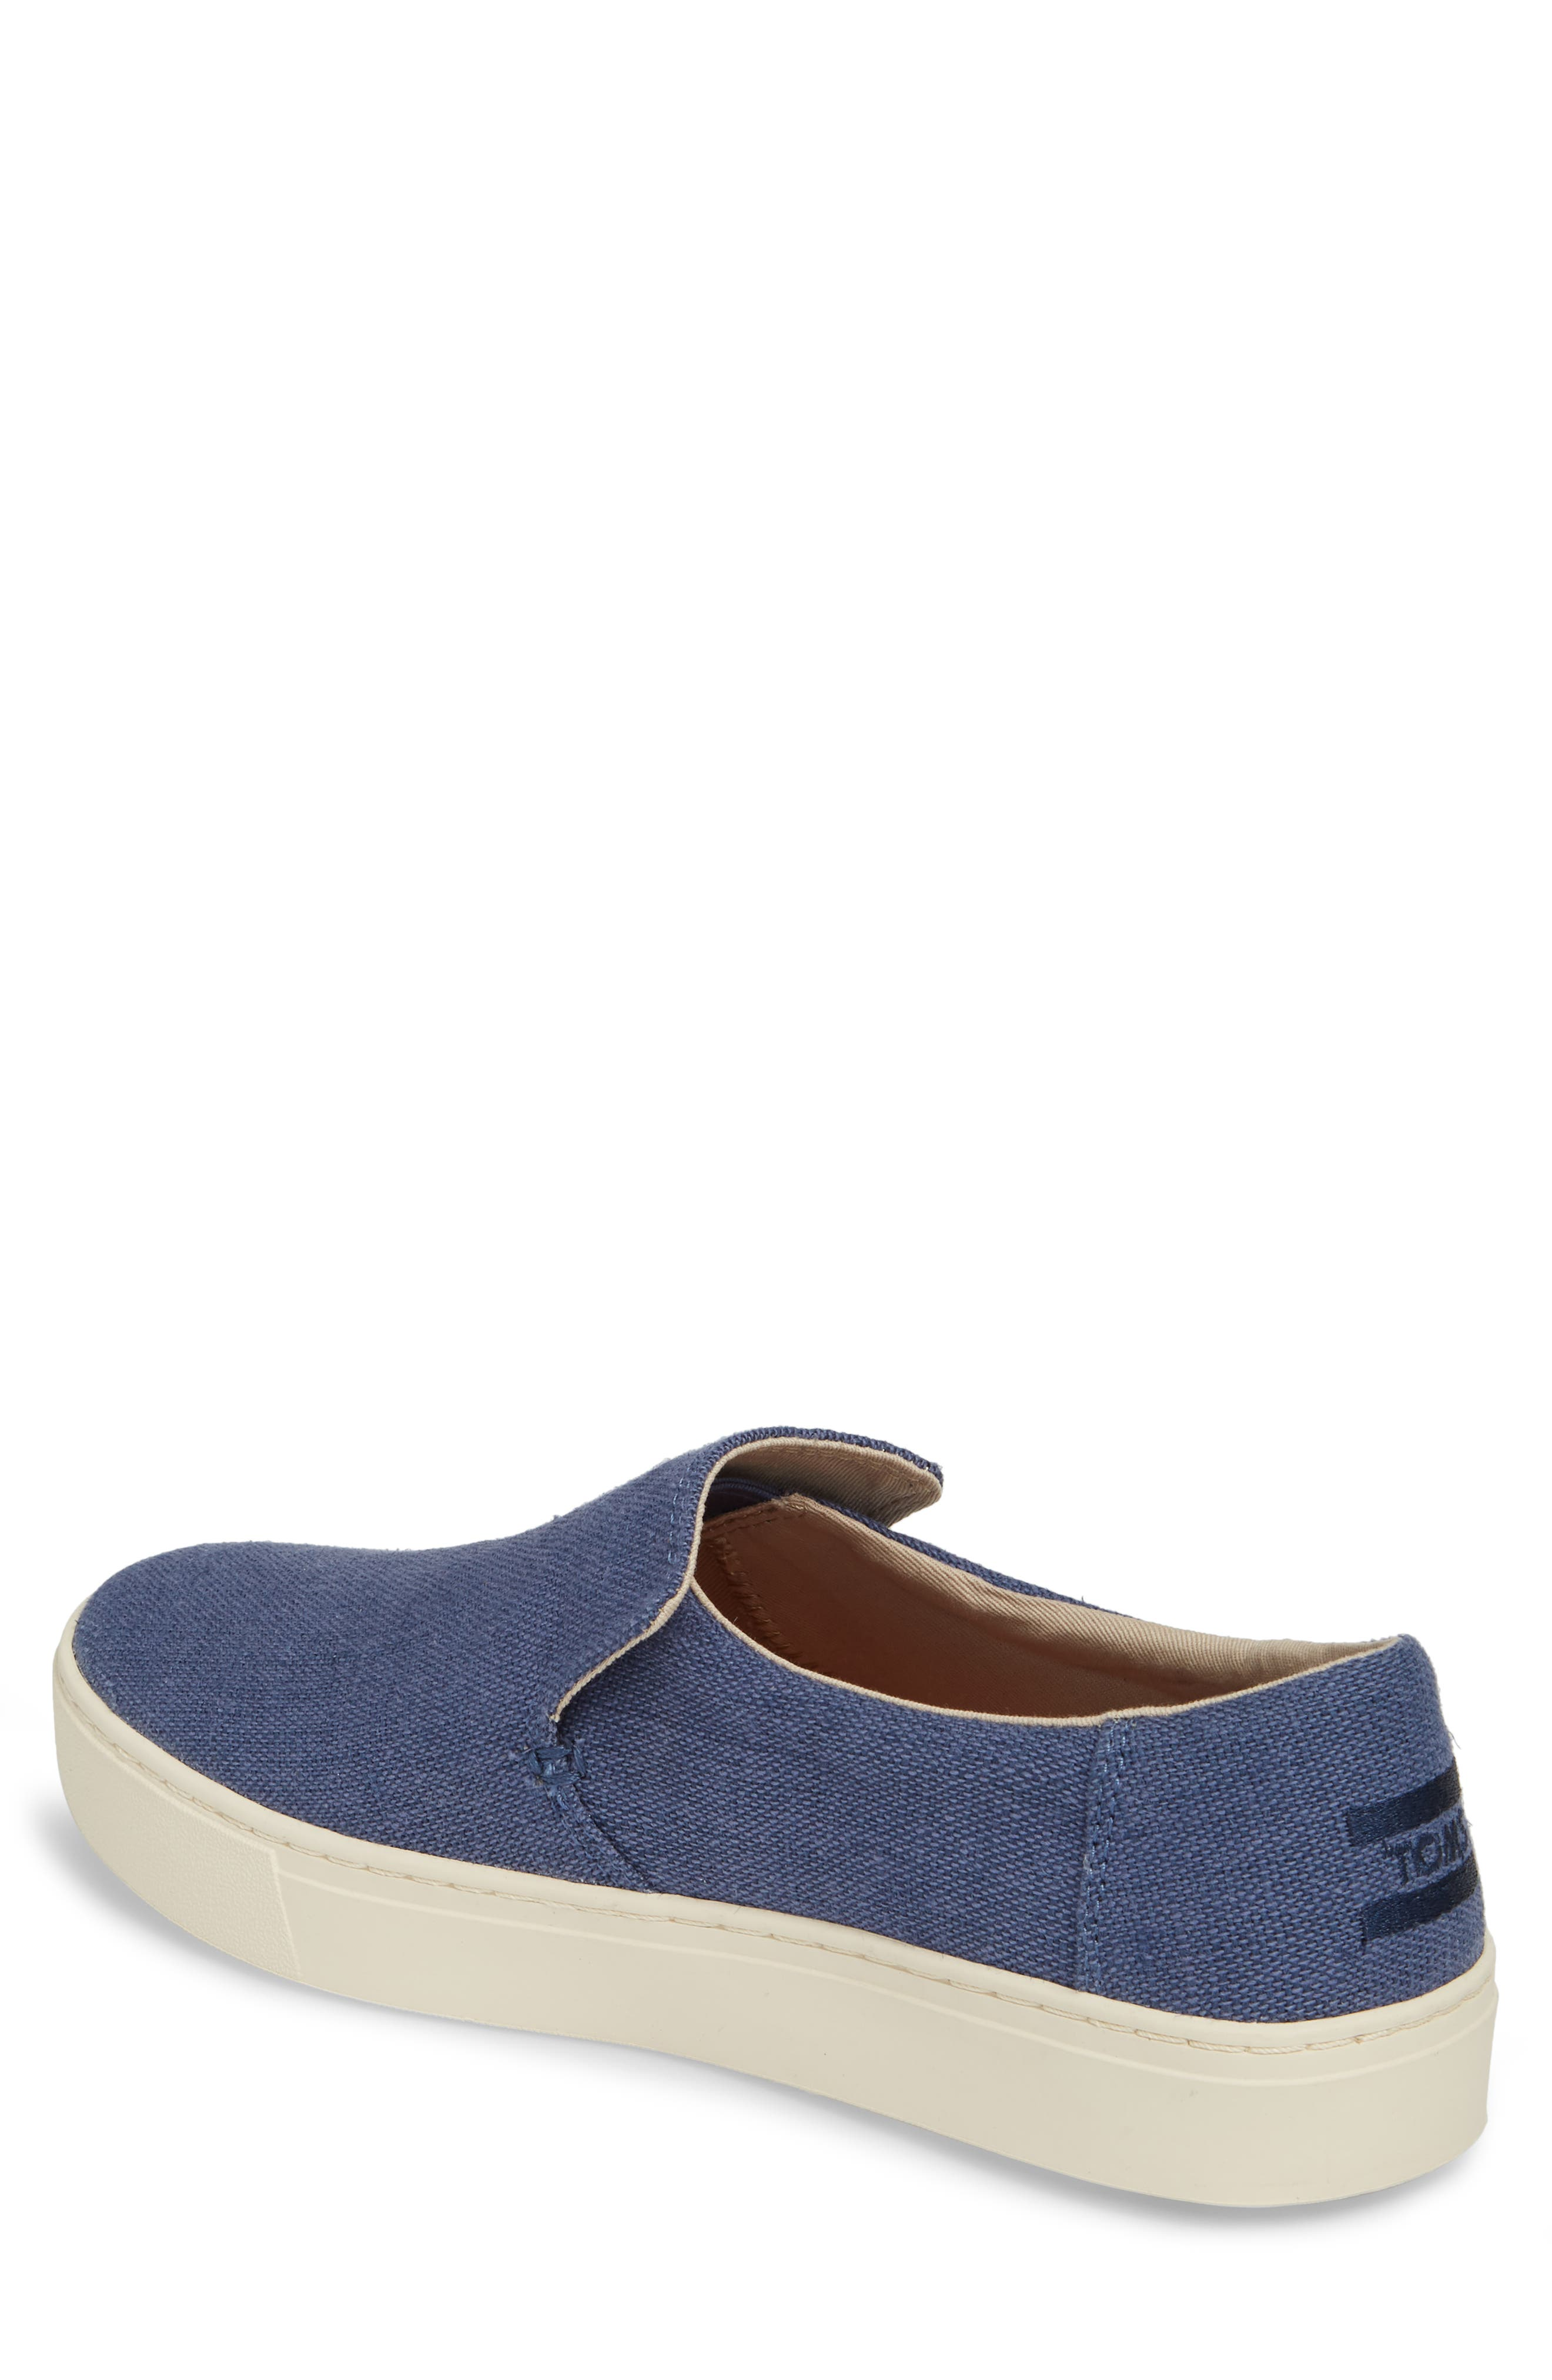 TOMS,                             Loma Slip-On Sneaker,                             Alternate thumbnail 2, color,                             CADET BLUE HERITAGE CANVAS